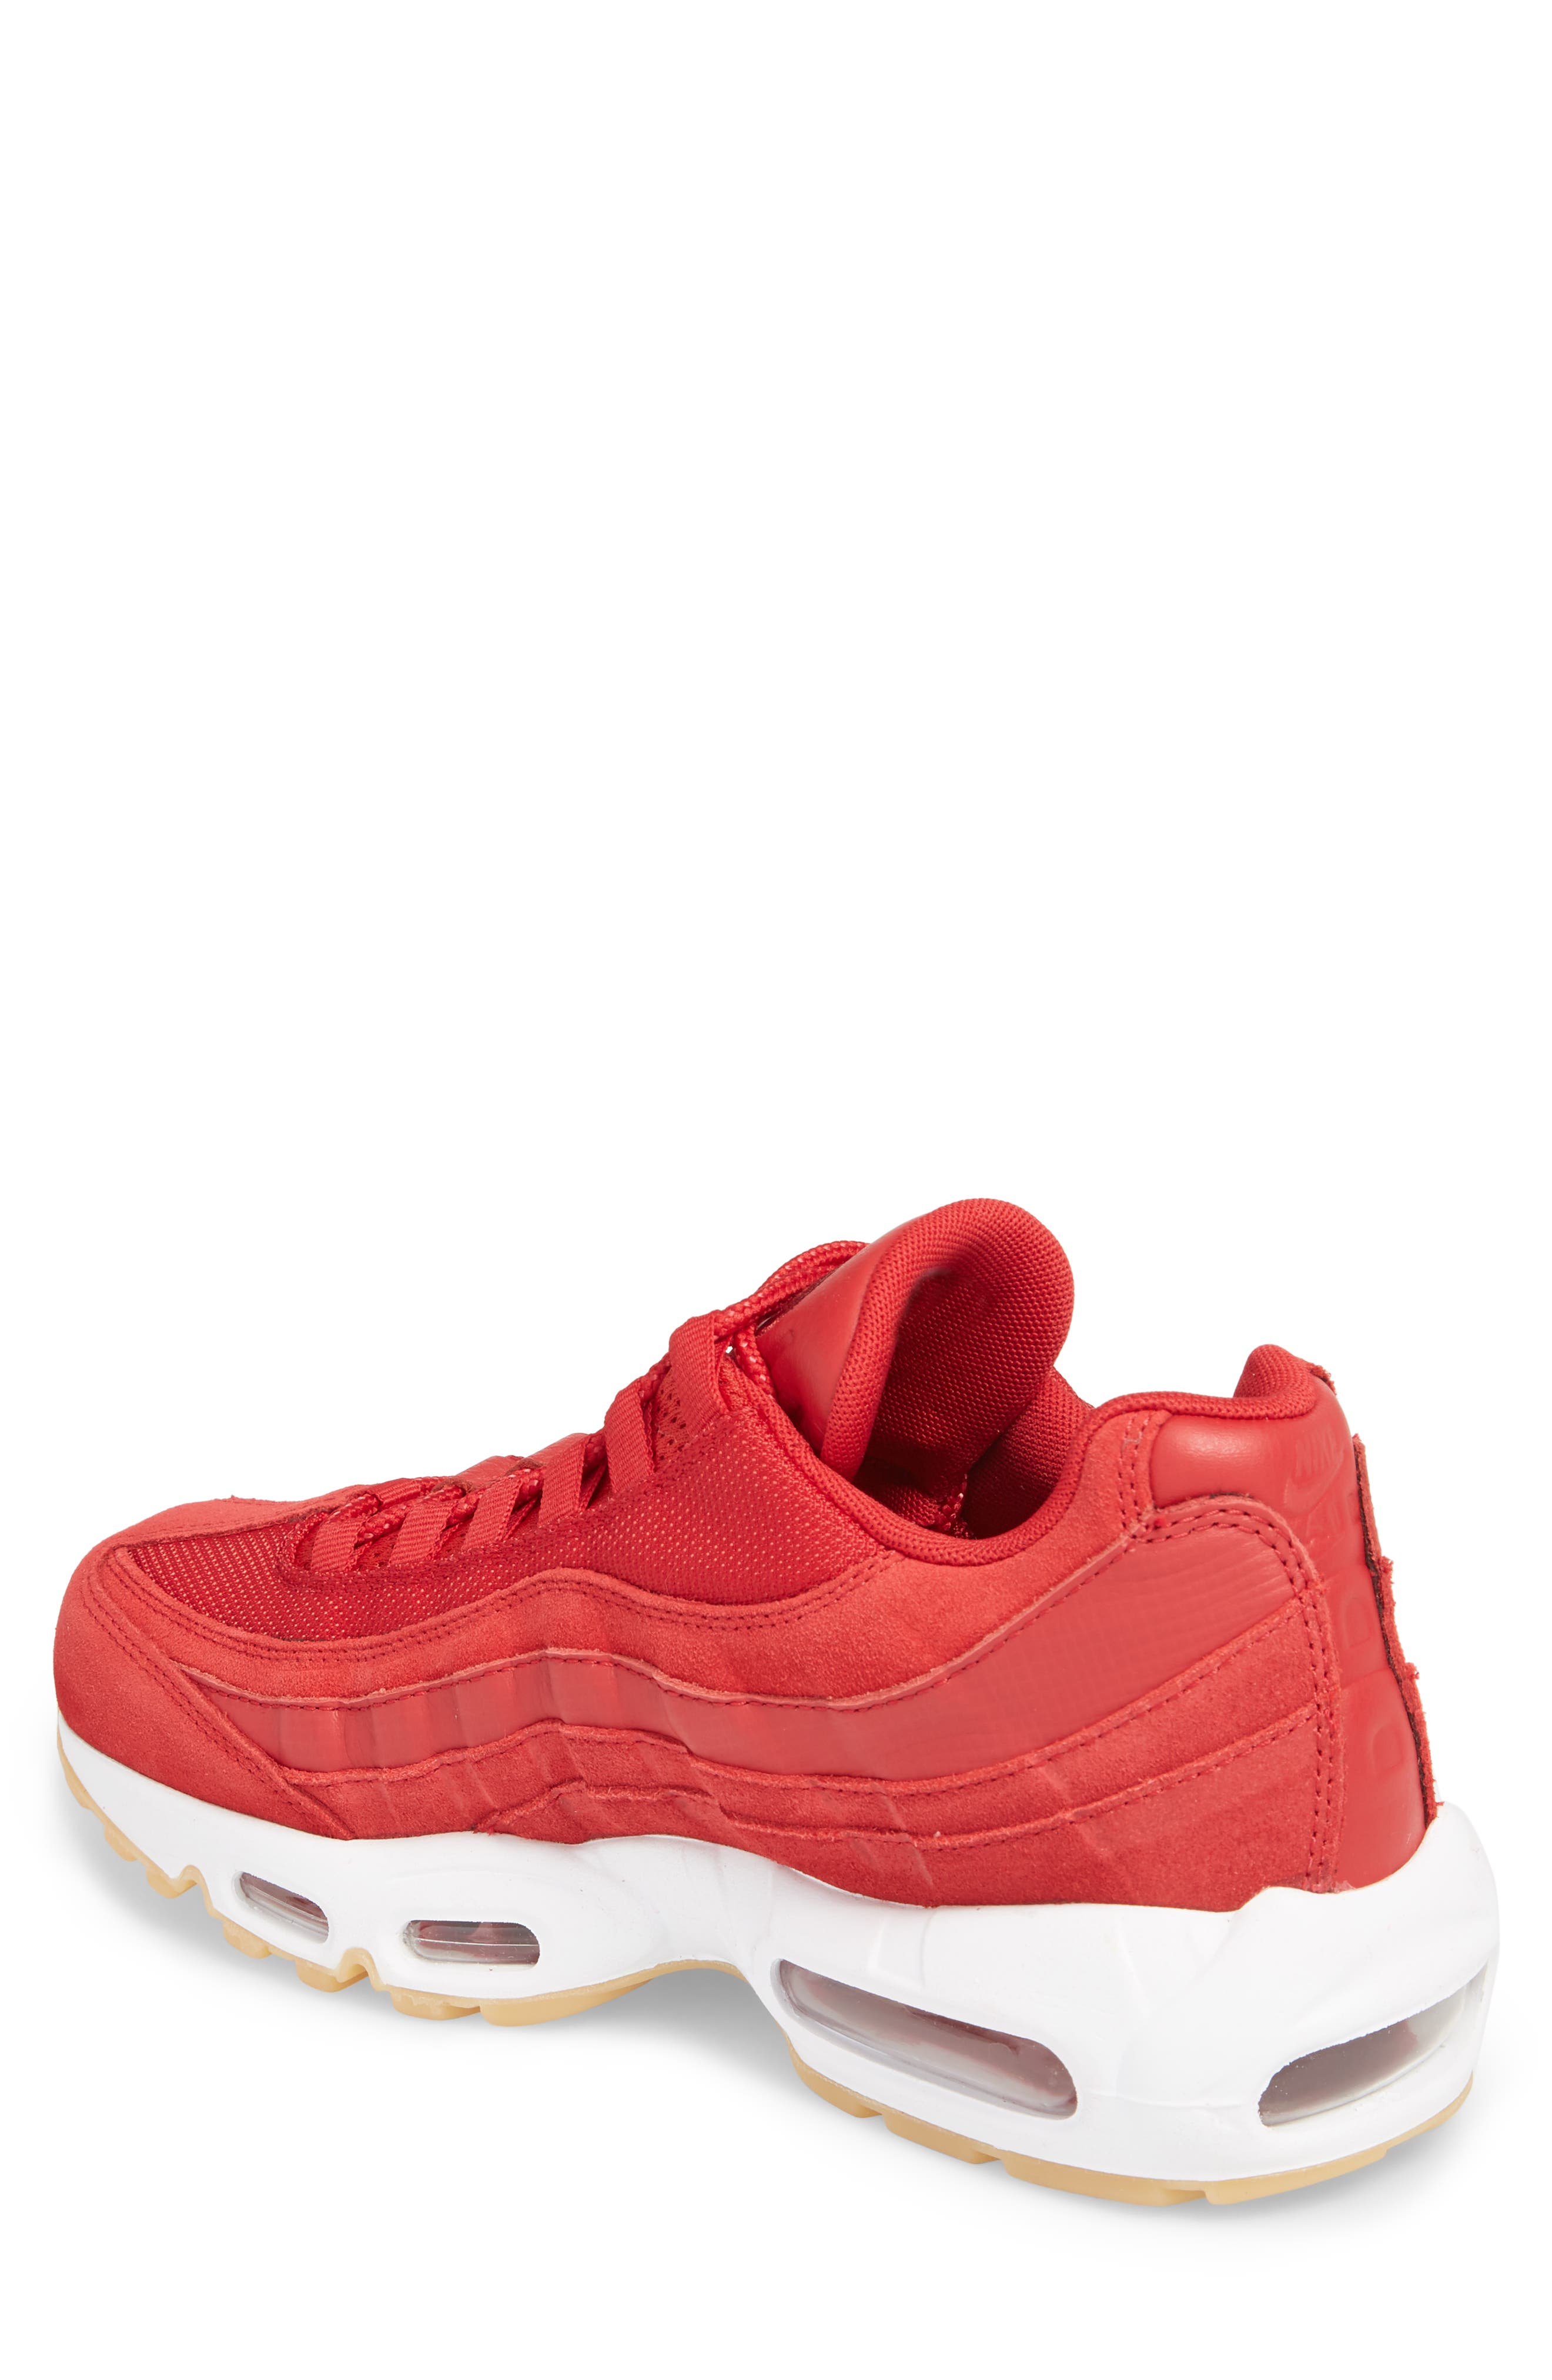 Air Max 95 Sneaker,                             Alternate thumbnail 2, color,                             GYM RED/ TEAM RED/ WHITE